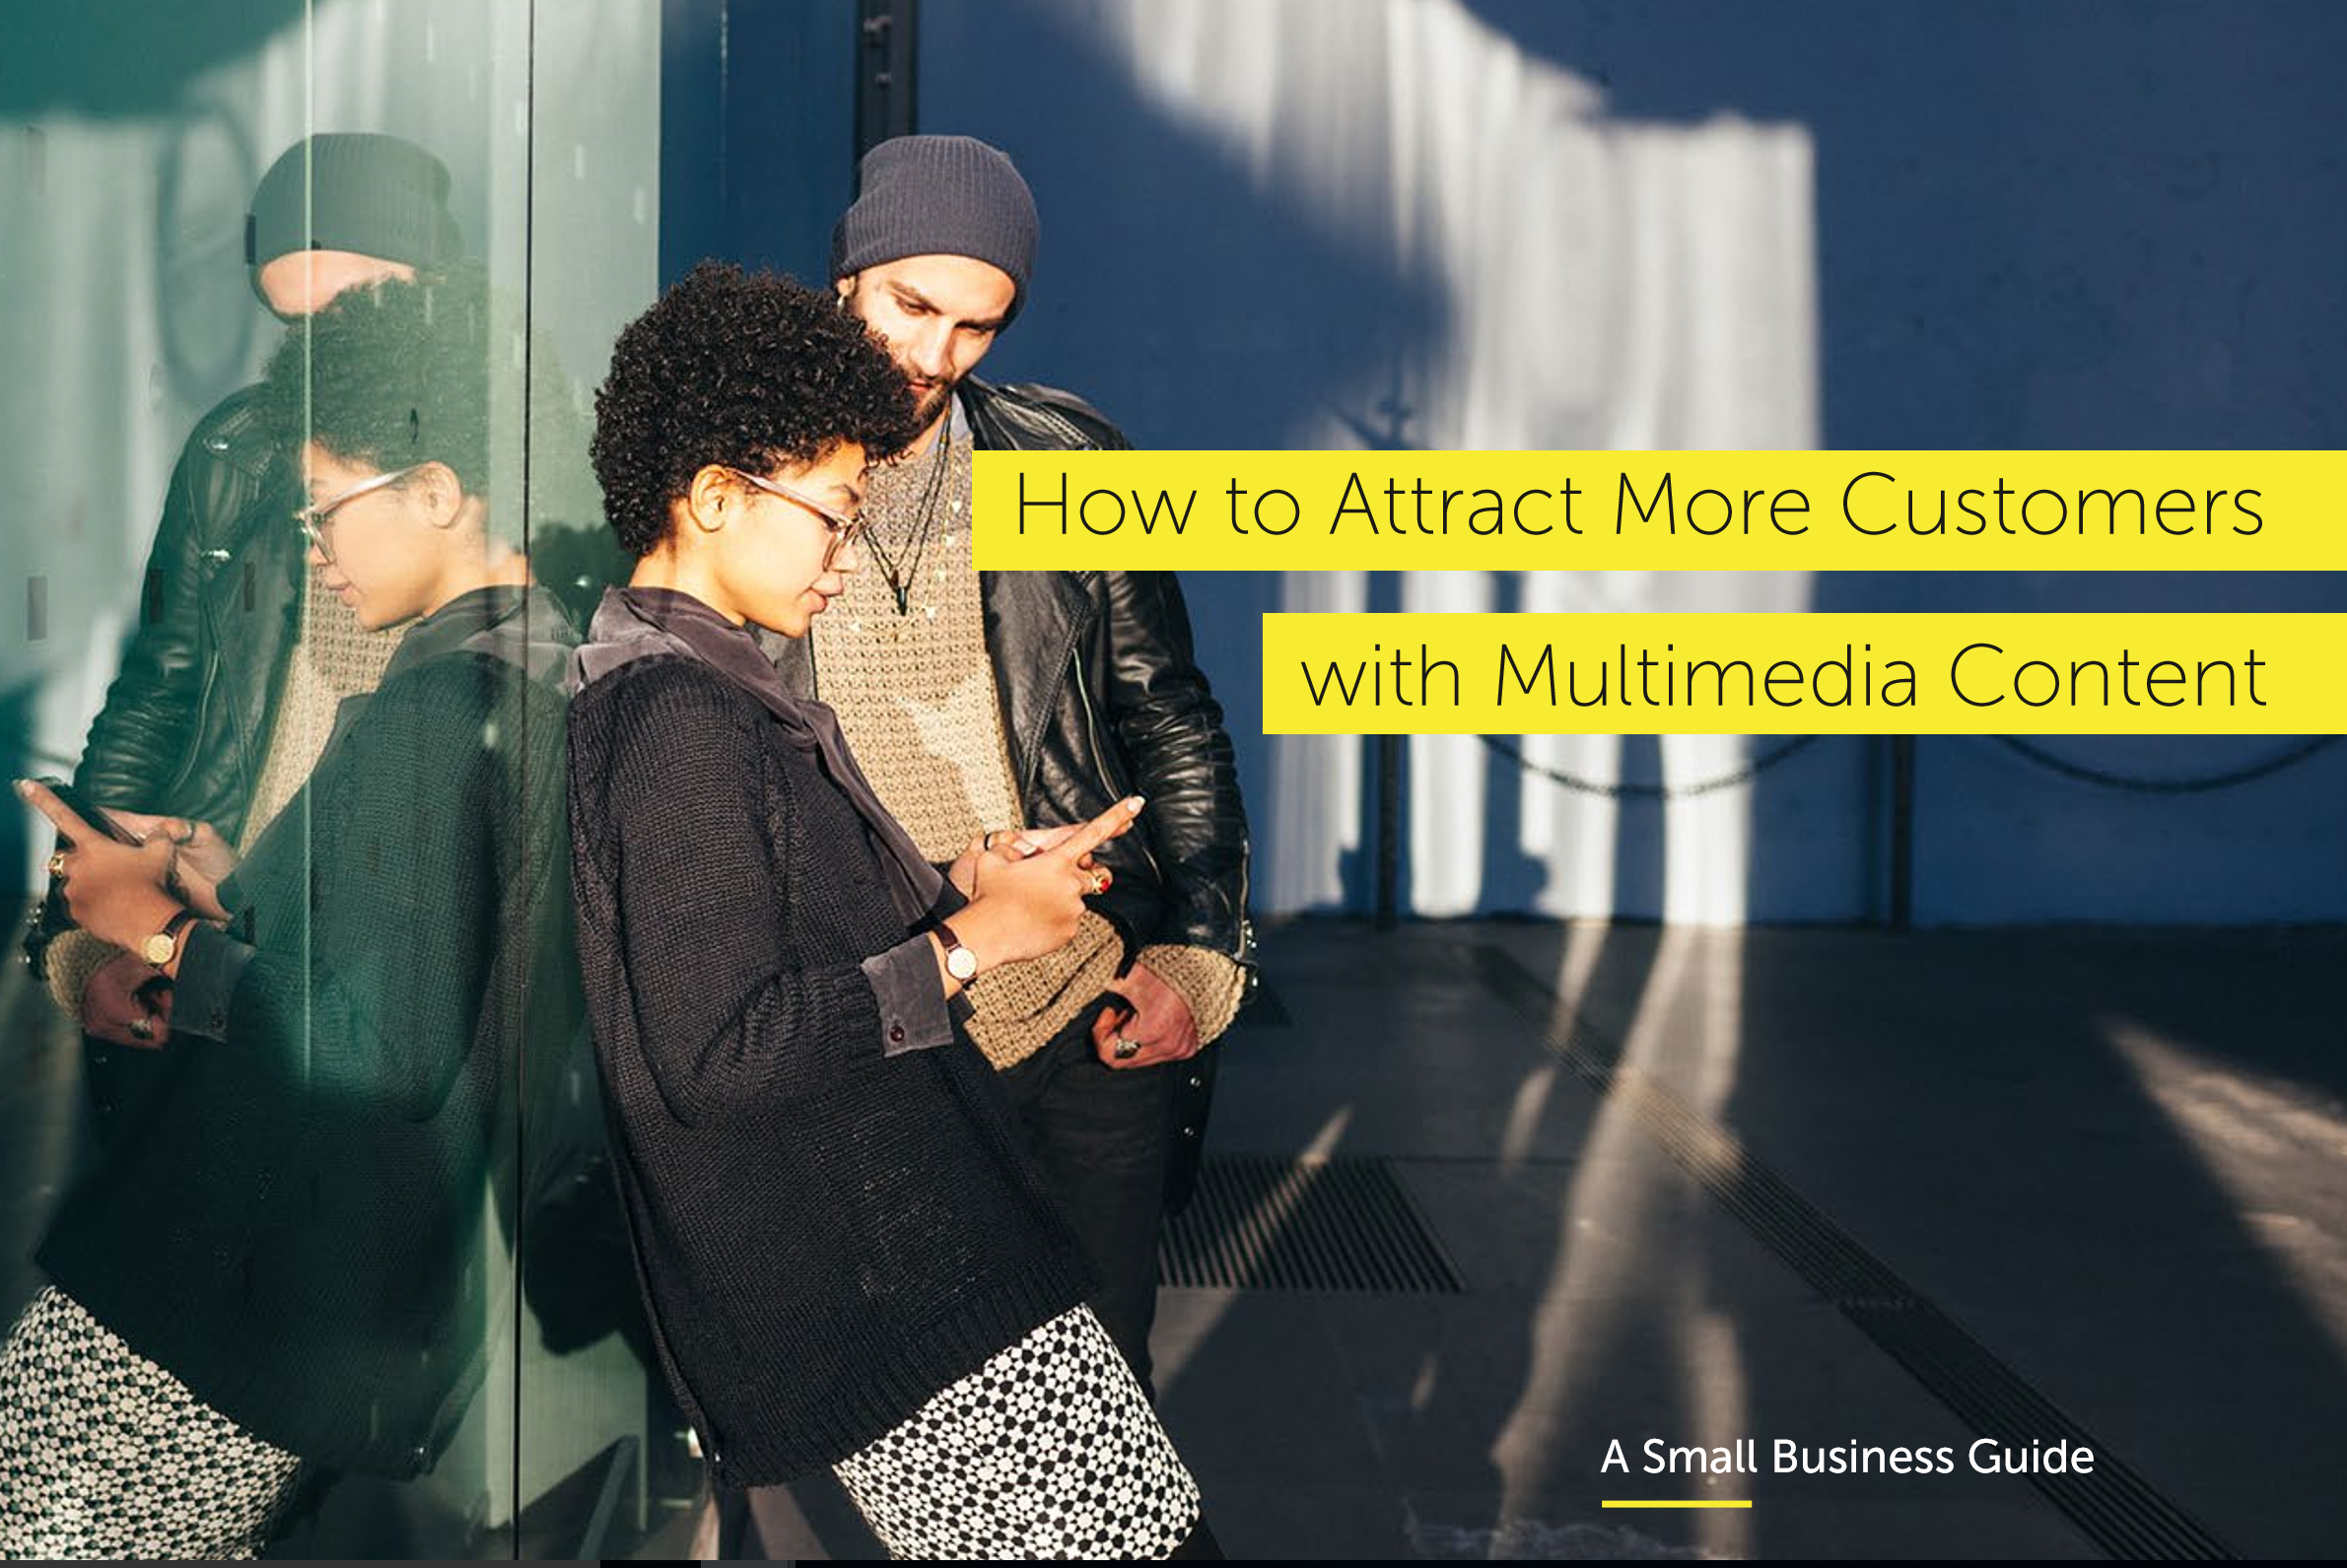 How to Attract More Customers with Multimedia Content: A Small Business Guide